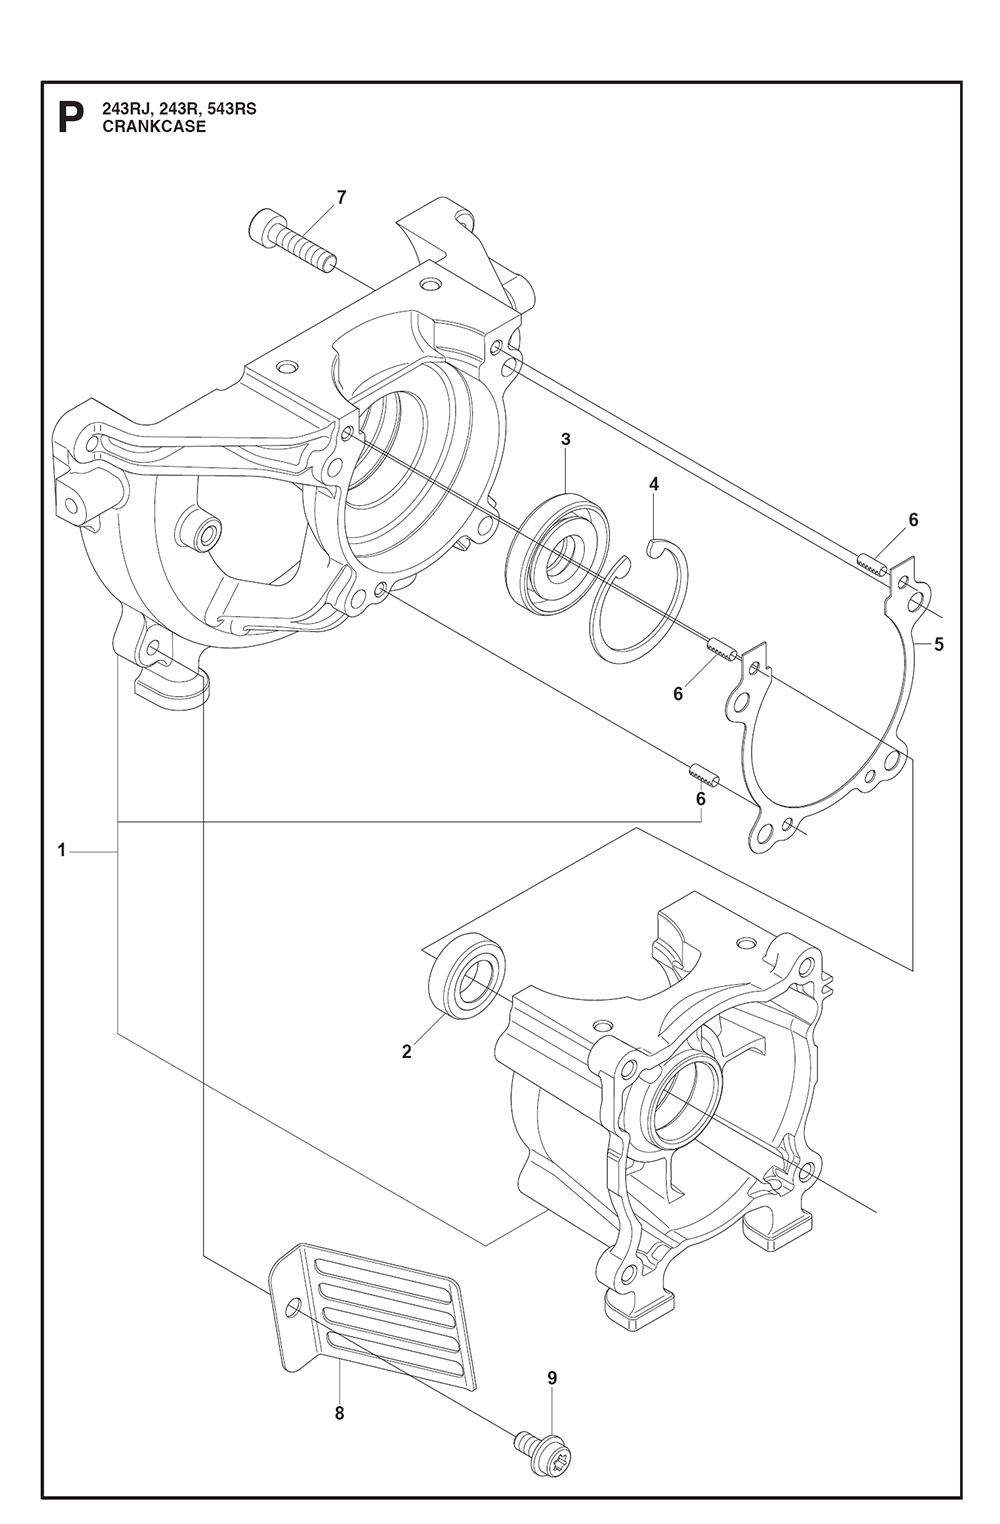 243 RJ-(23)-Husqvarna-PB-13Break Down